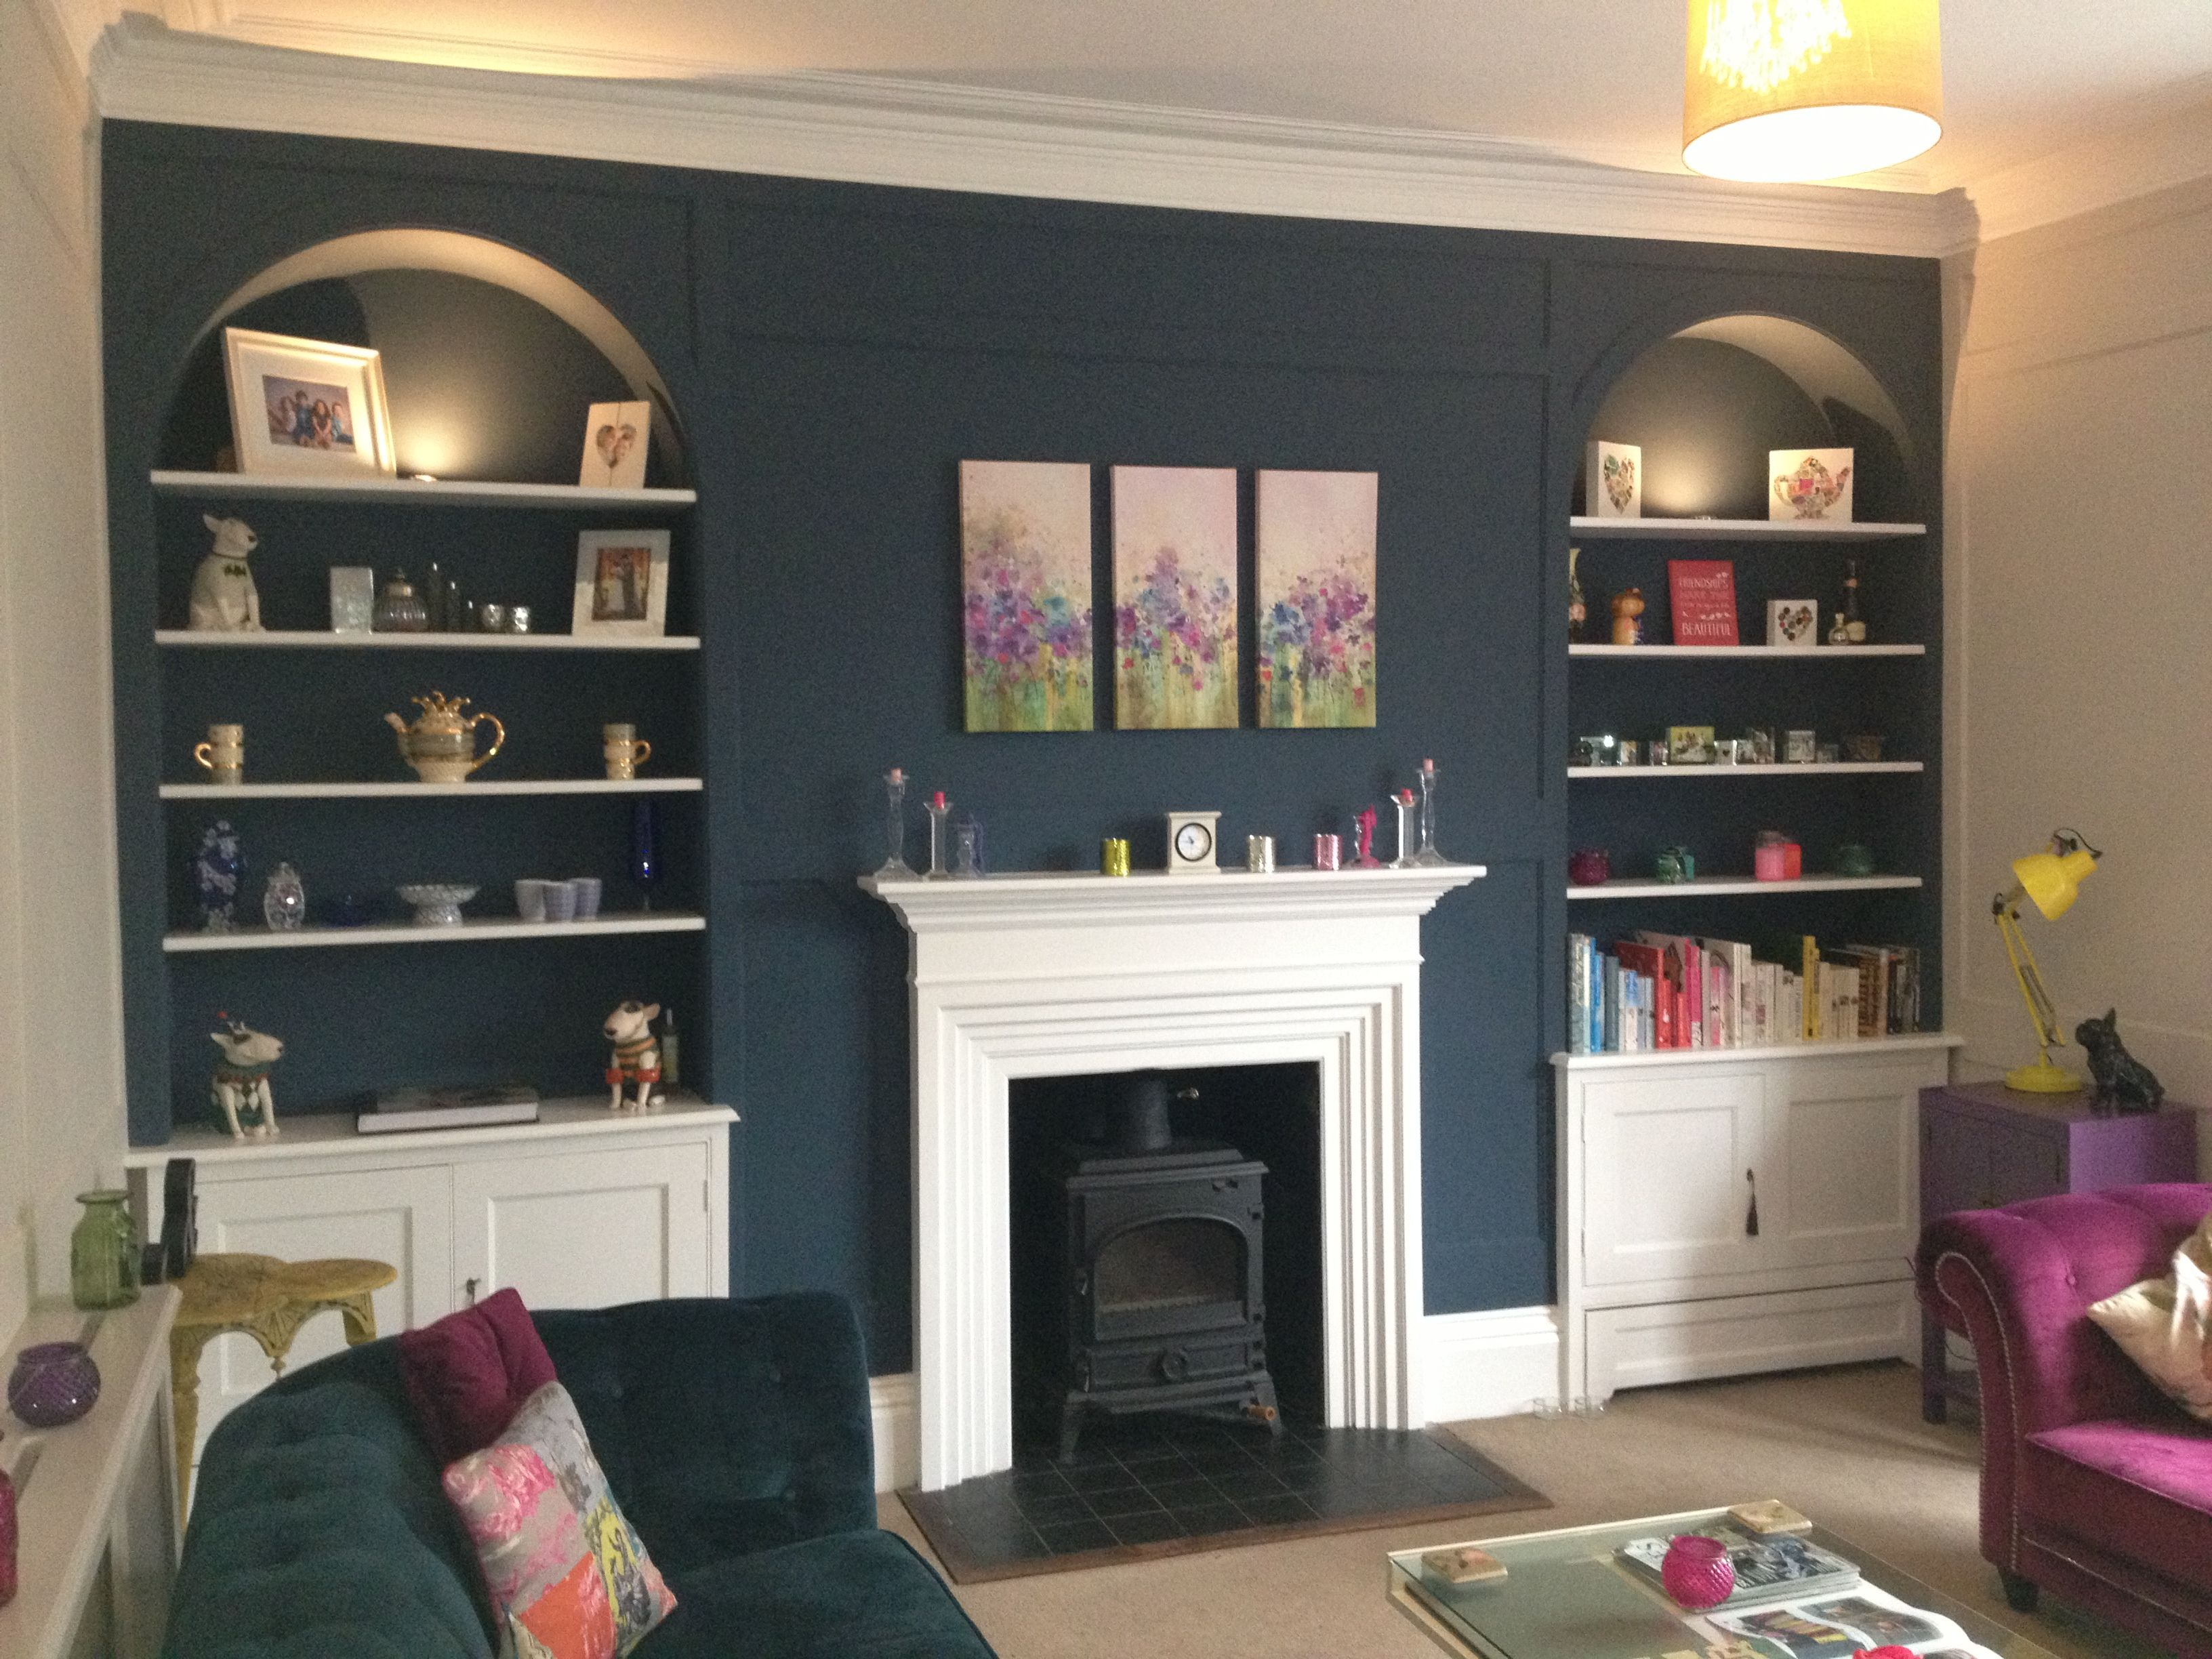 Our New Living Room Painted In Farrow Ball Stiffkey Blue Cornforth White Bold Rich